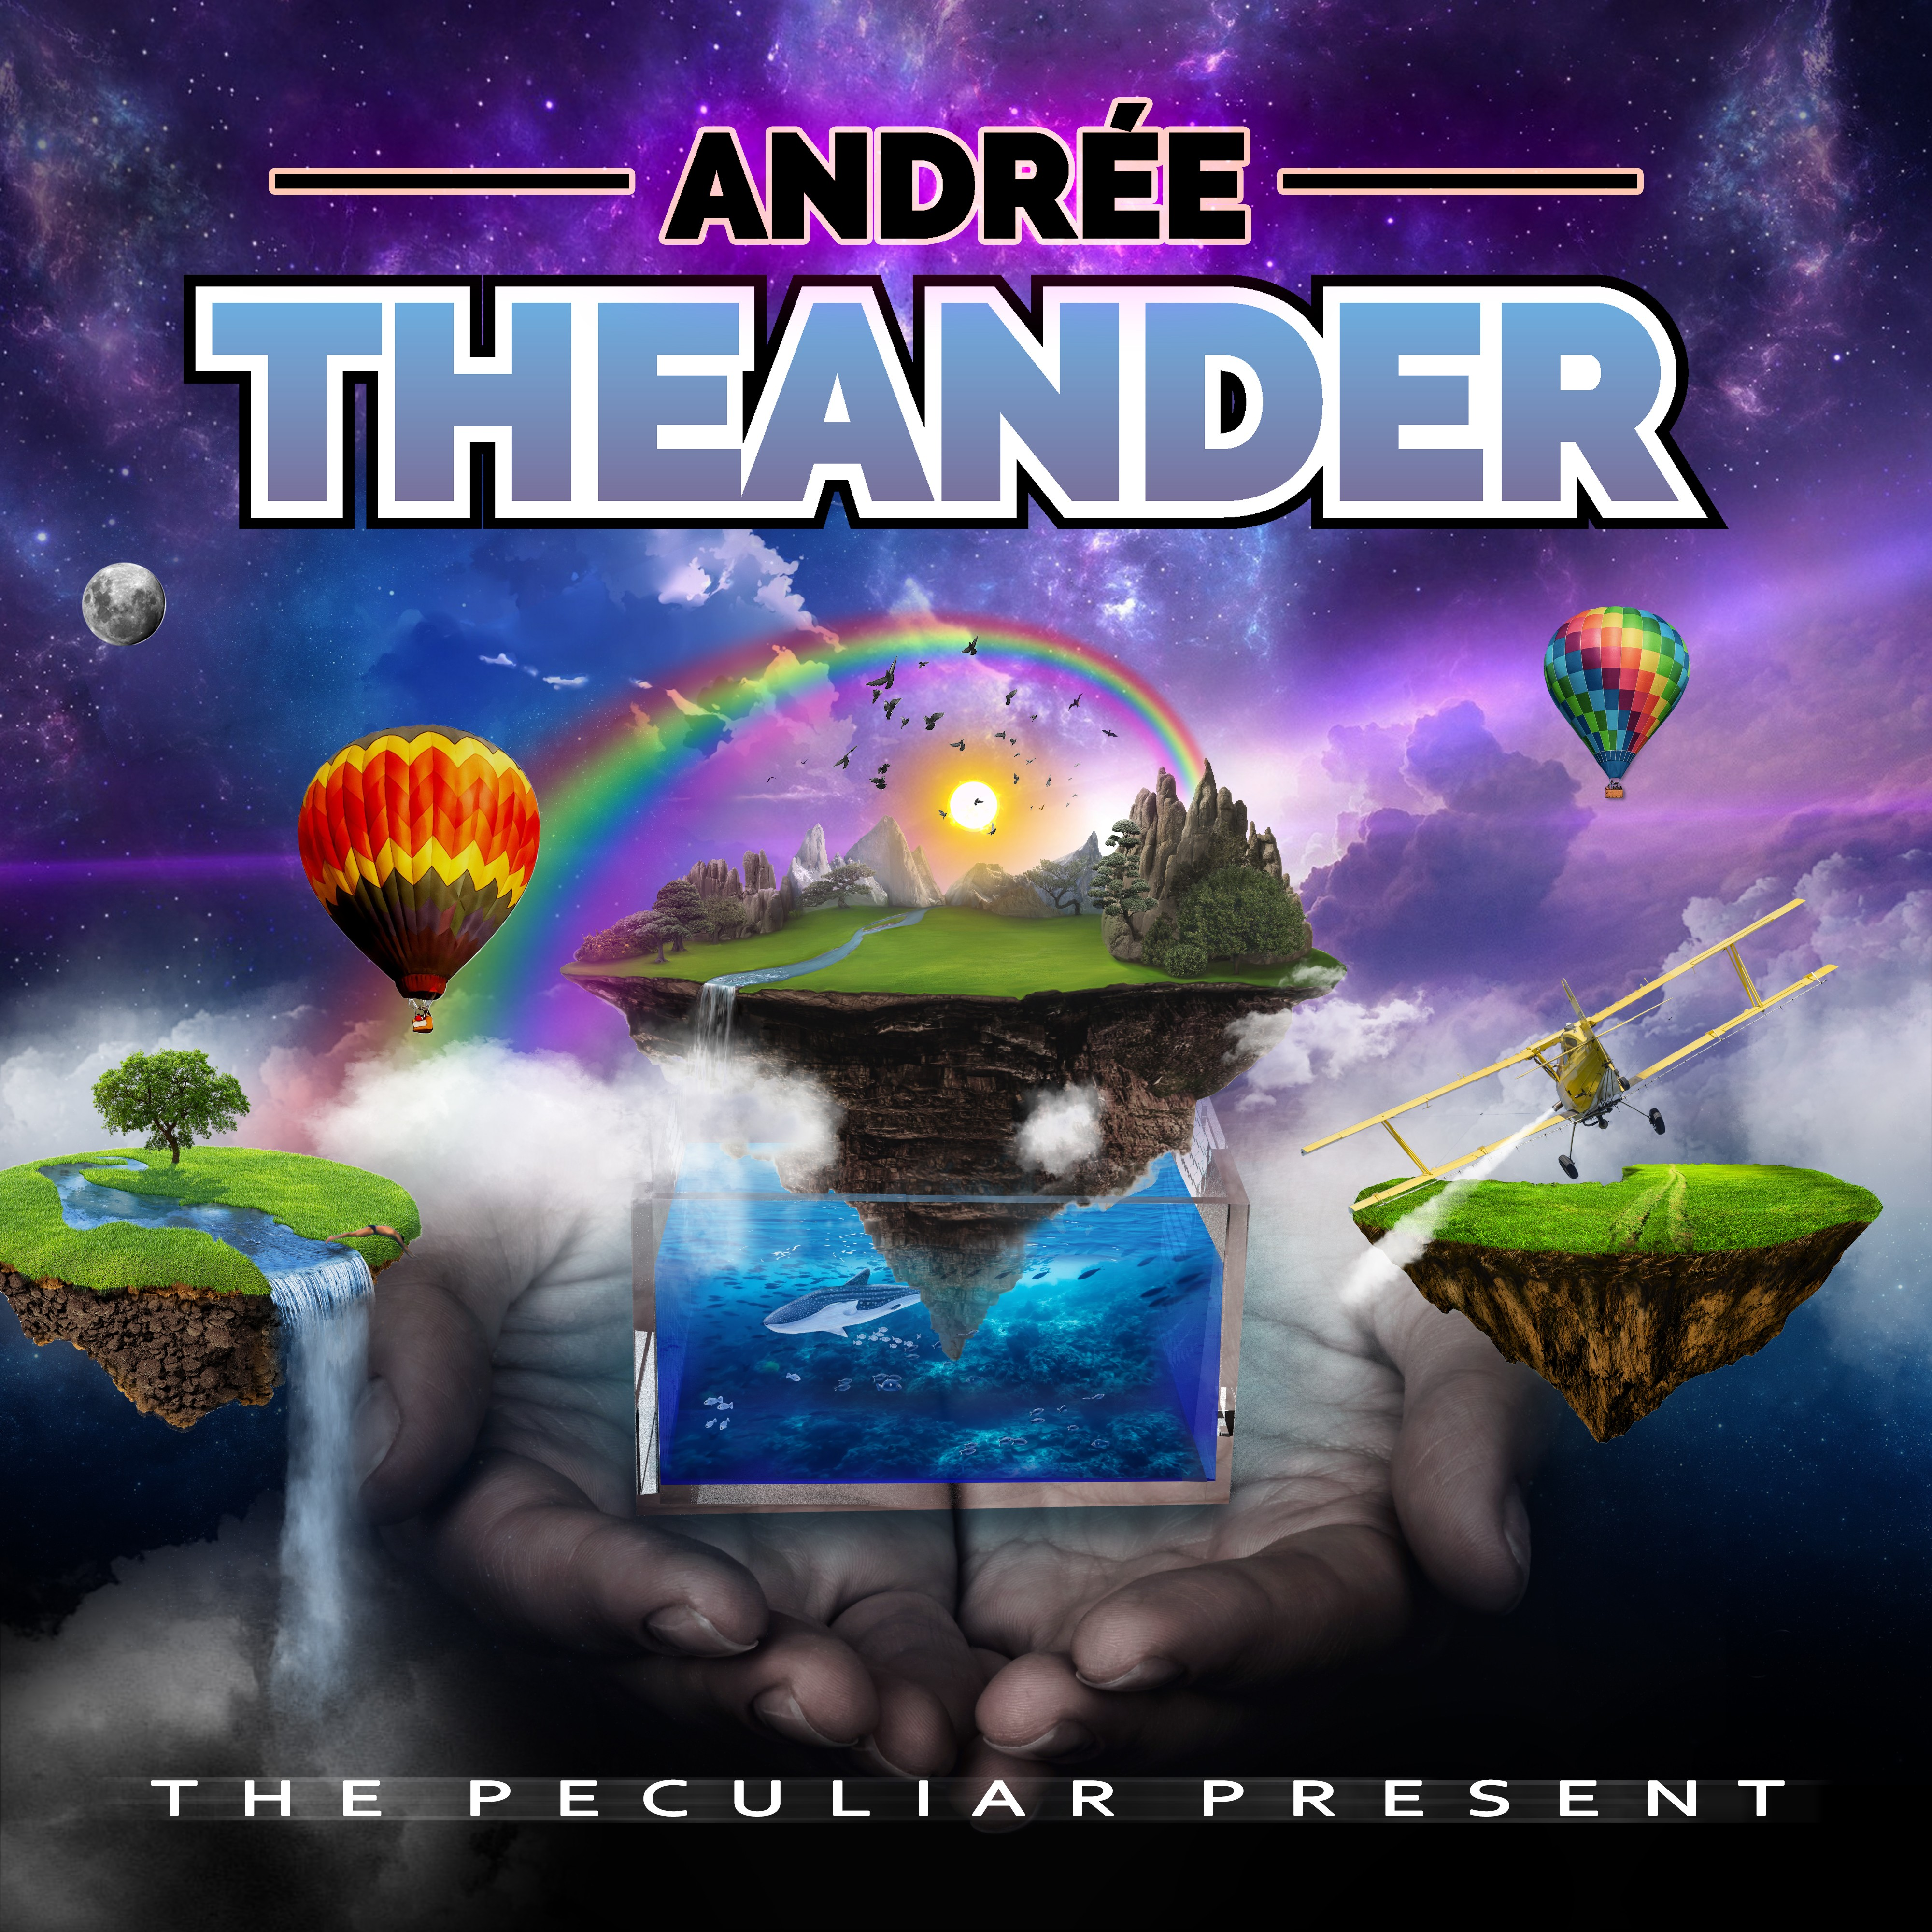 THEANDER, ANDREE - The Peculiar Present